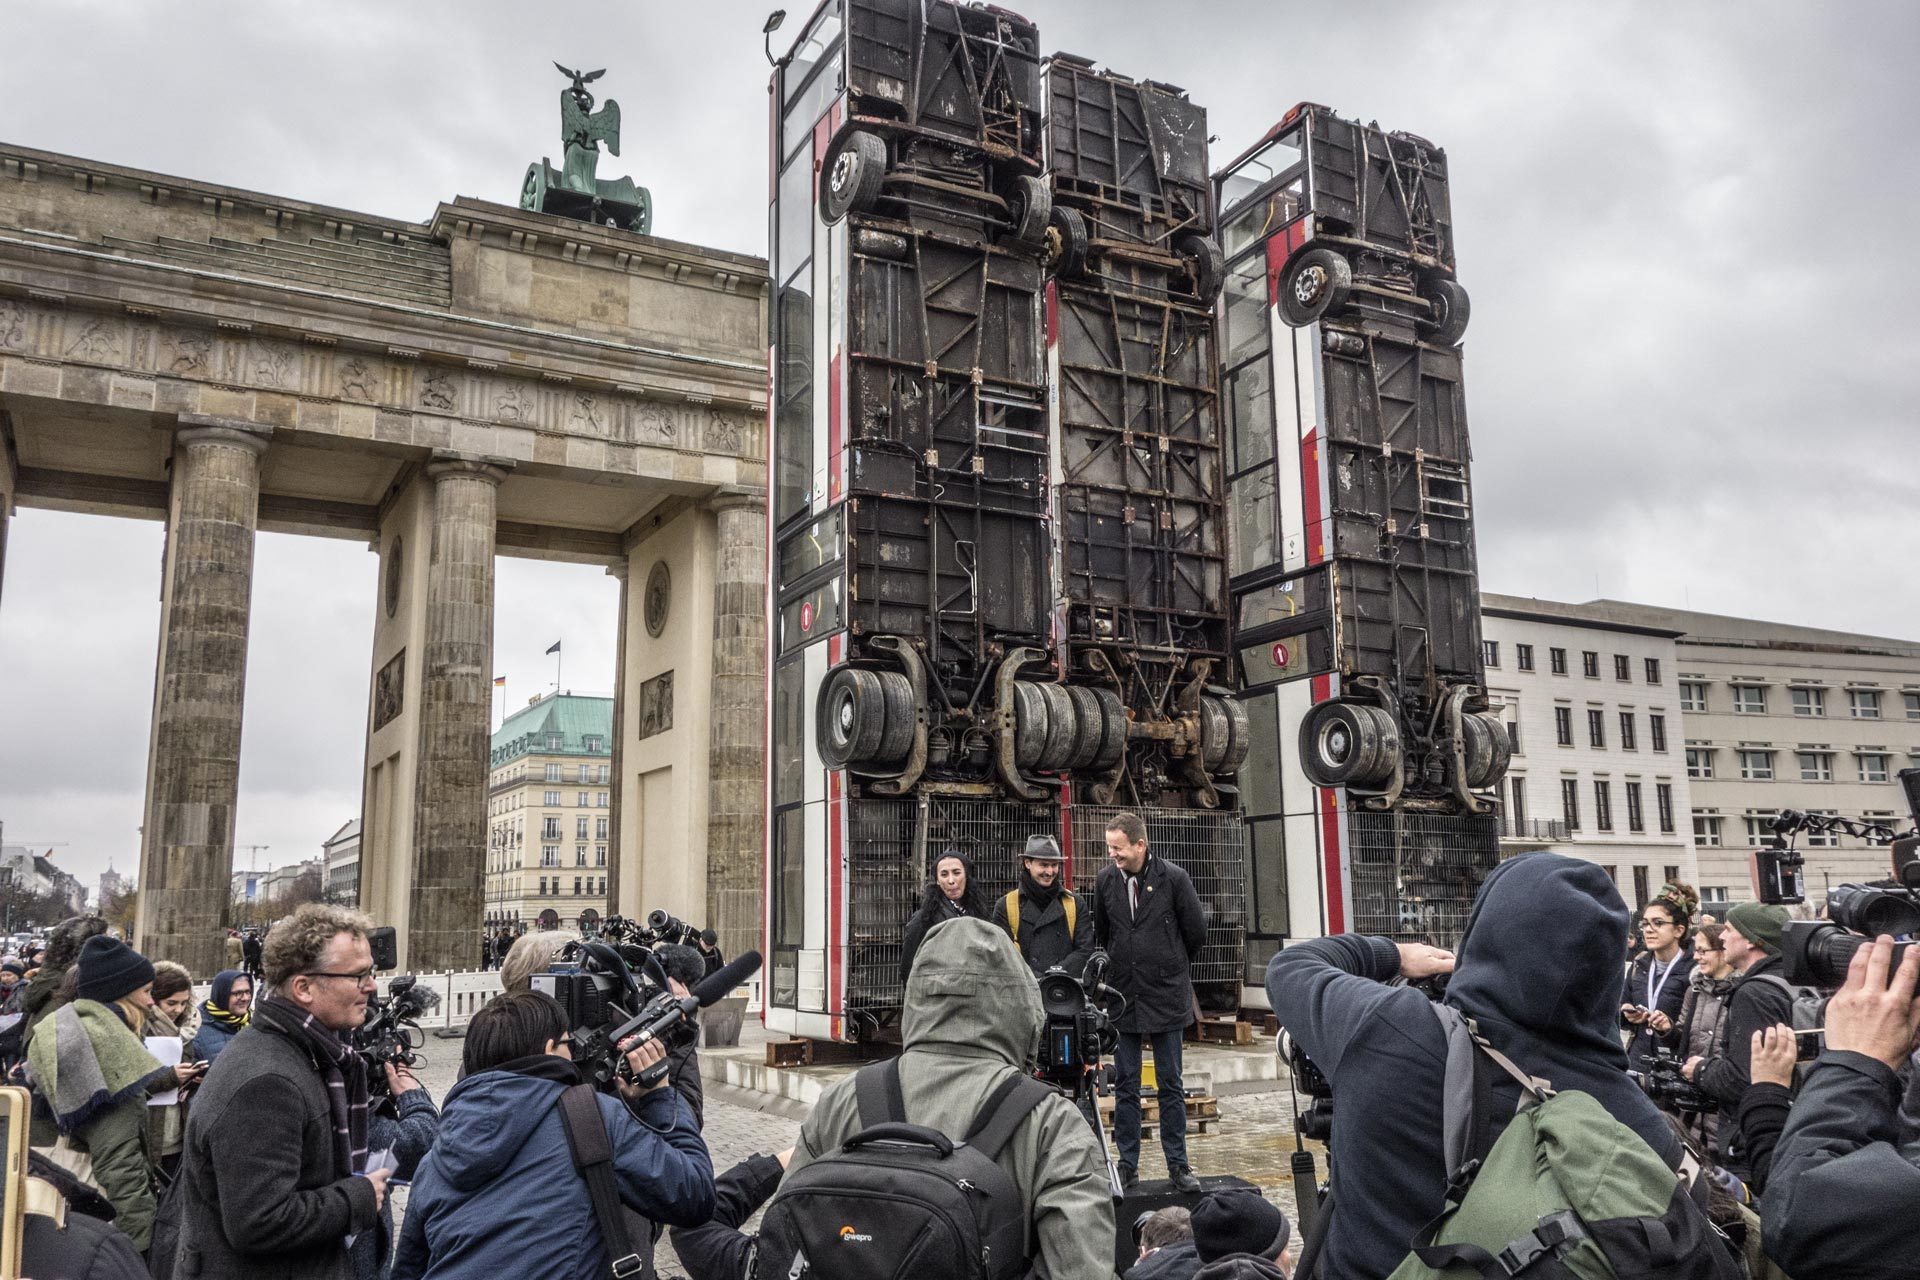 The 3 buses of Monument Berlin under construction